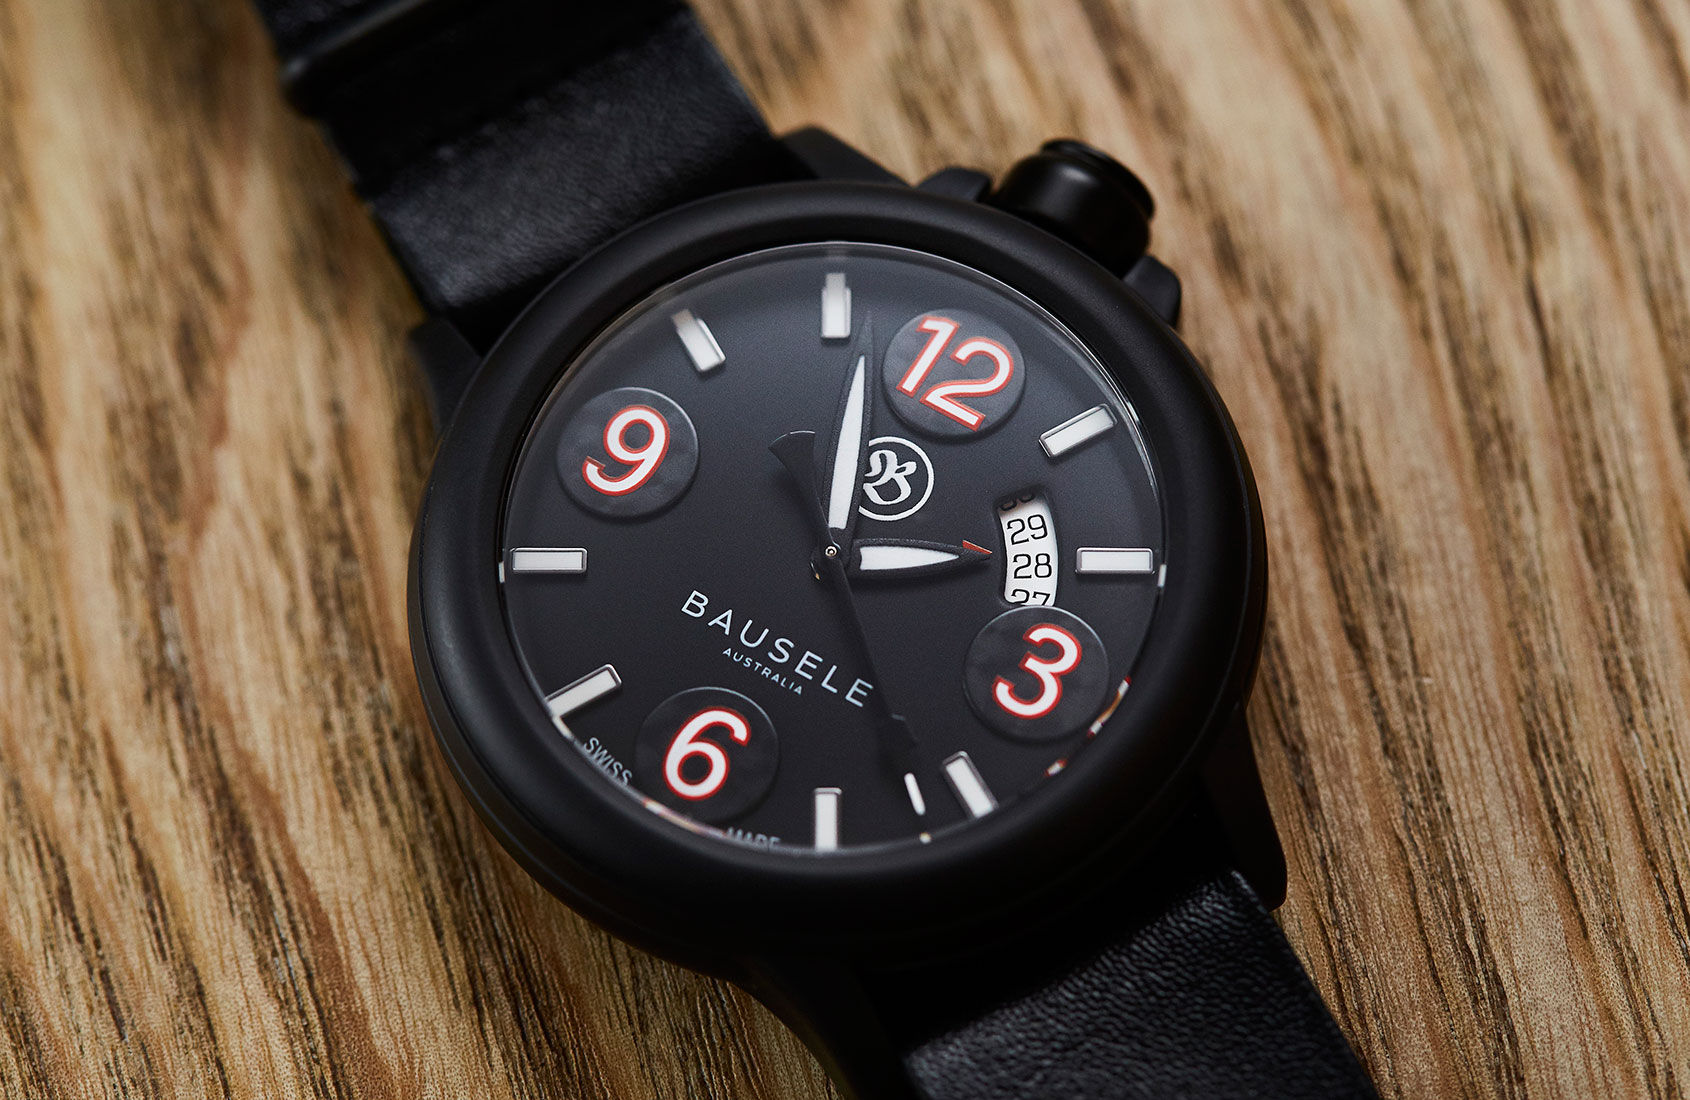 HANDS-ON: The Bausele Pilot All Black – a value packed ceramic pilot with a twist